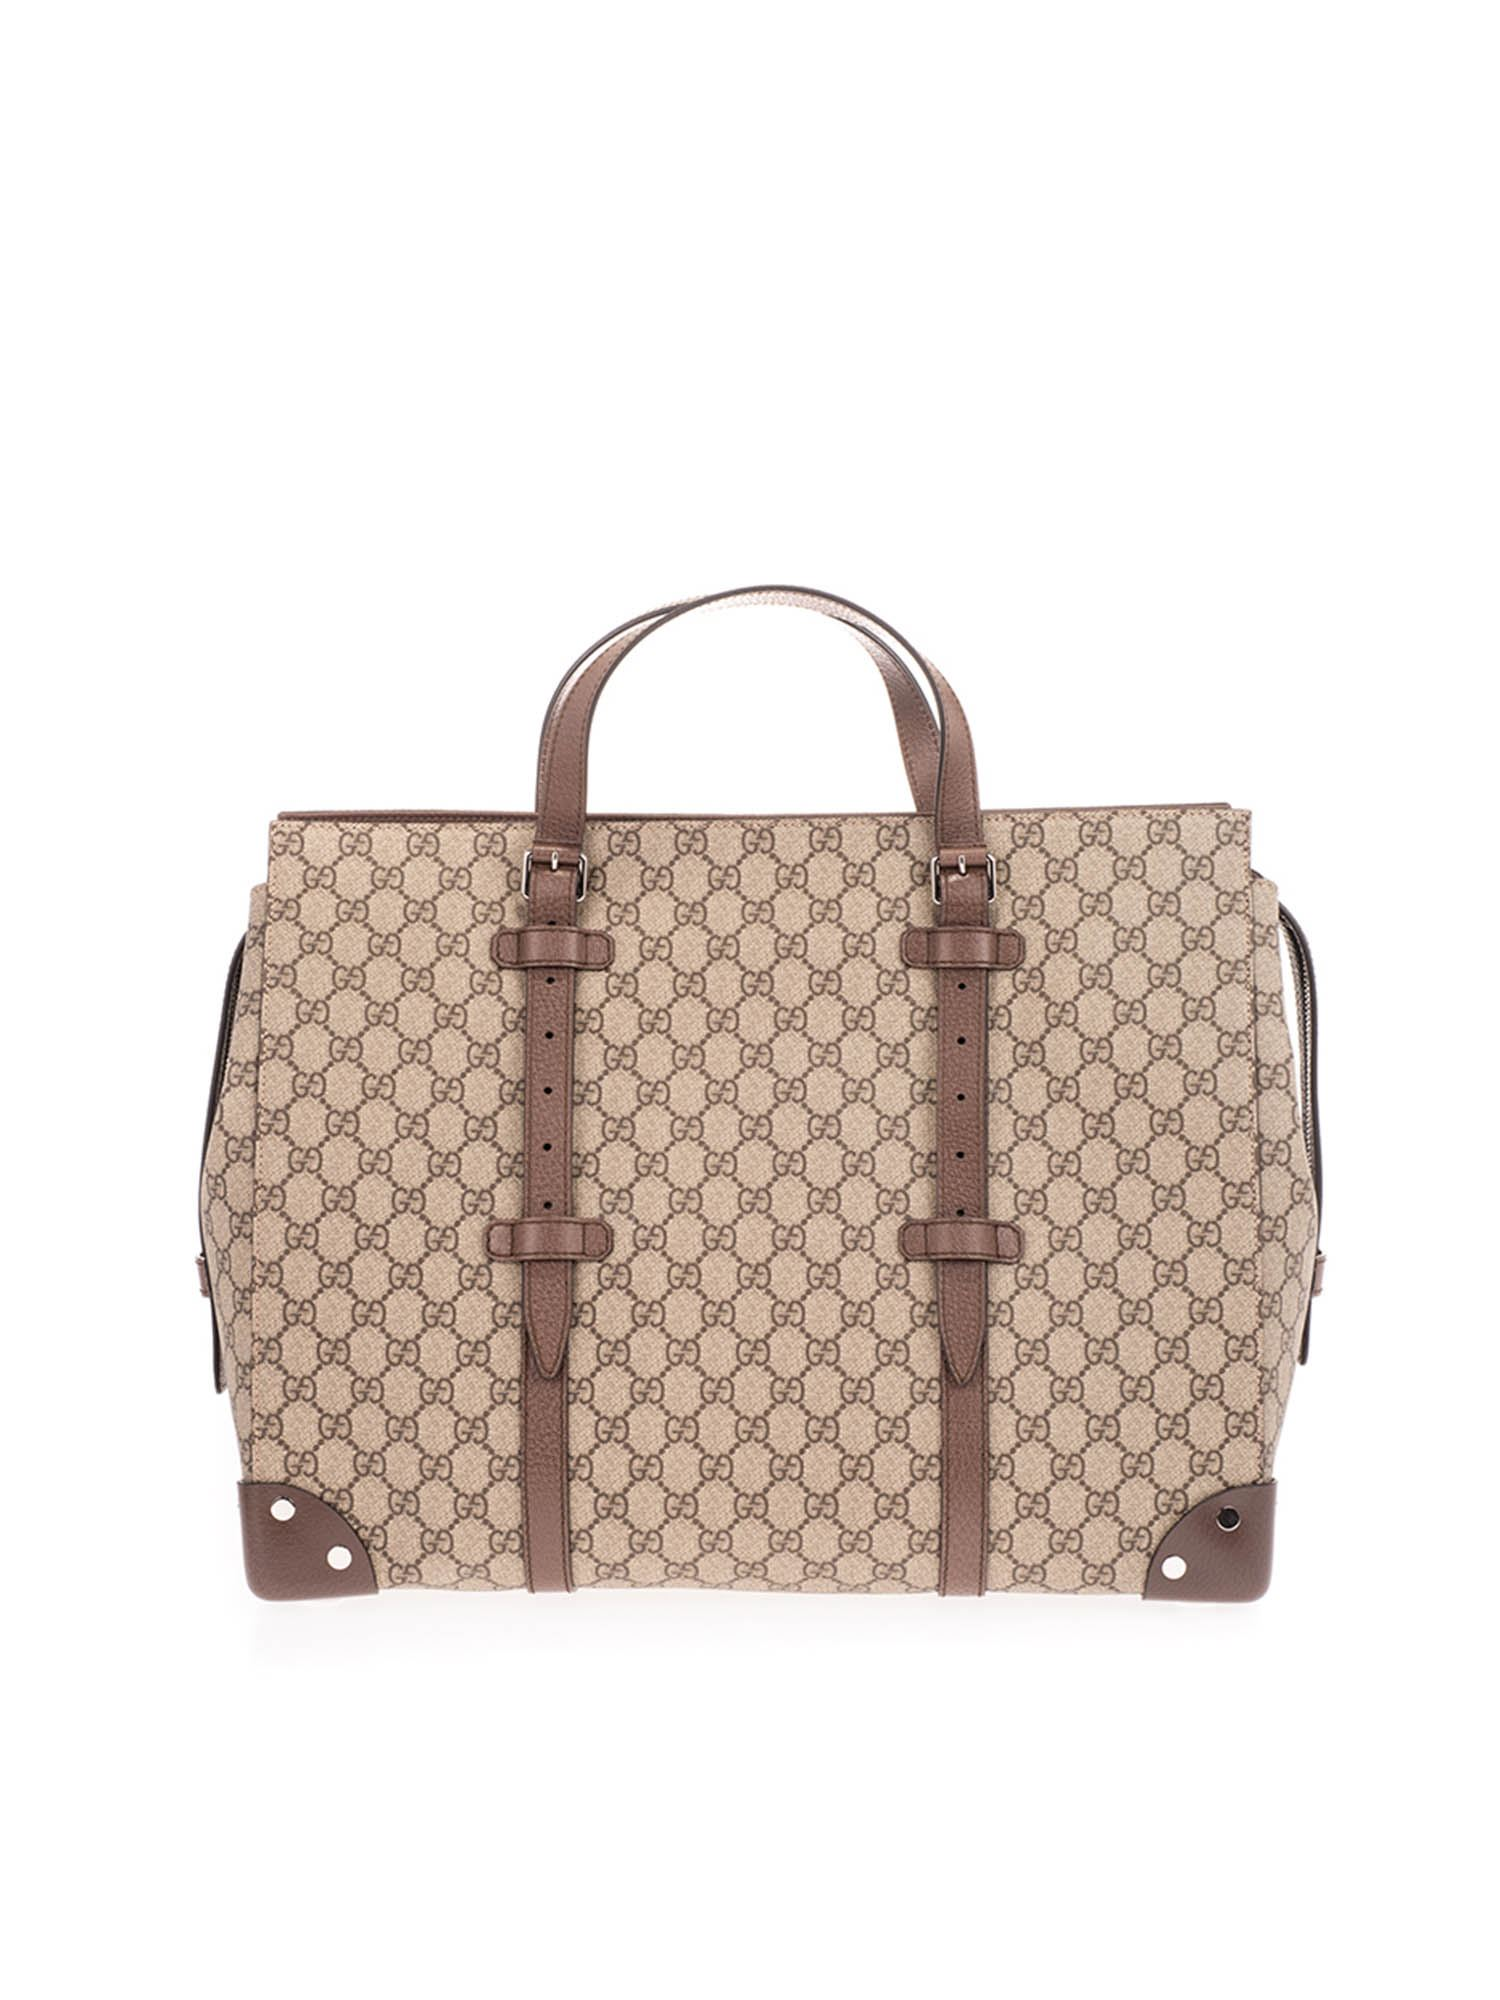 Gucci LARGE GG BAG IN BEIGE